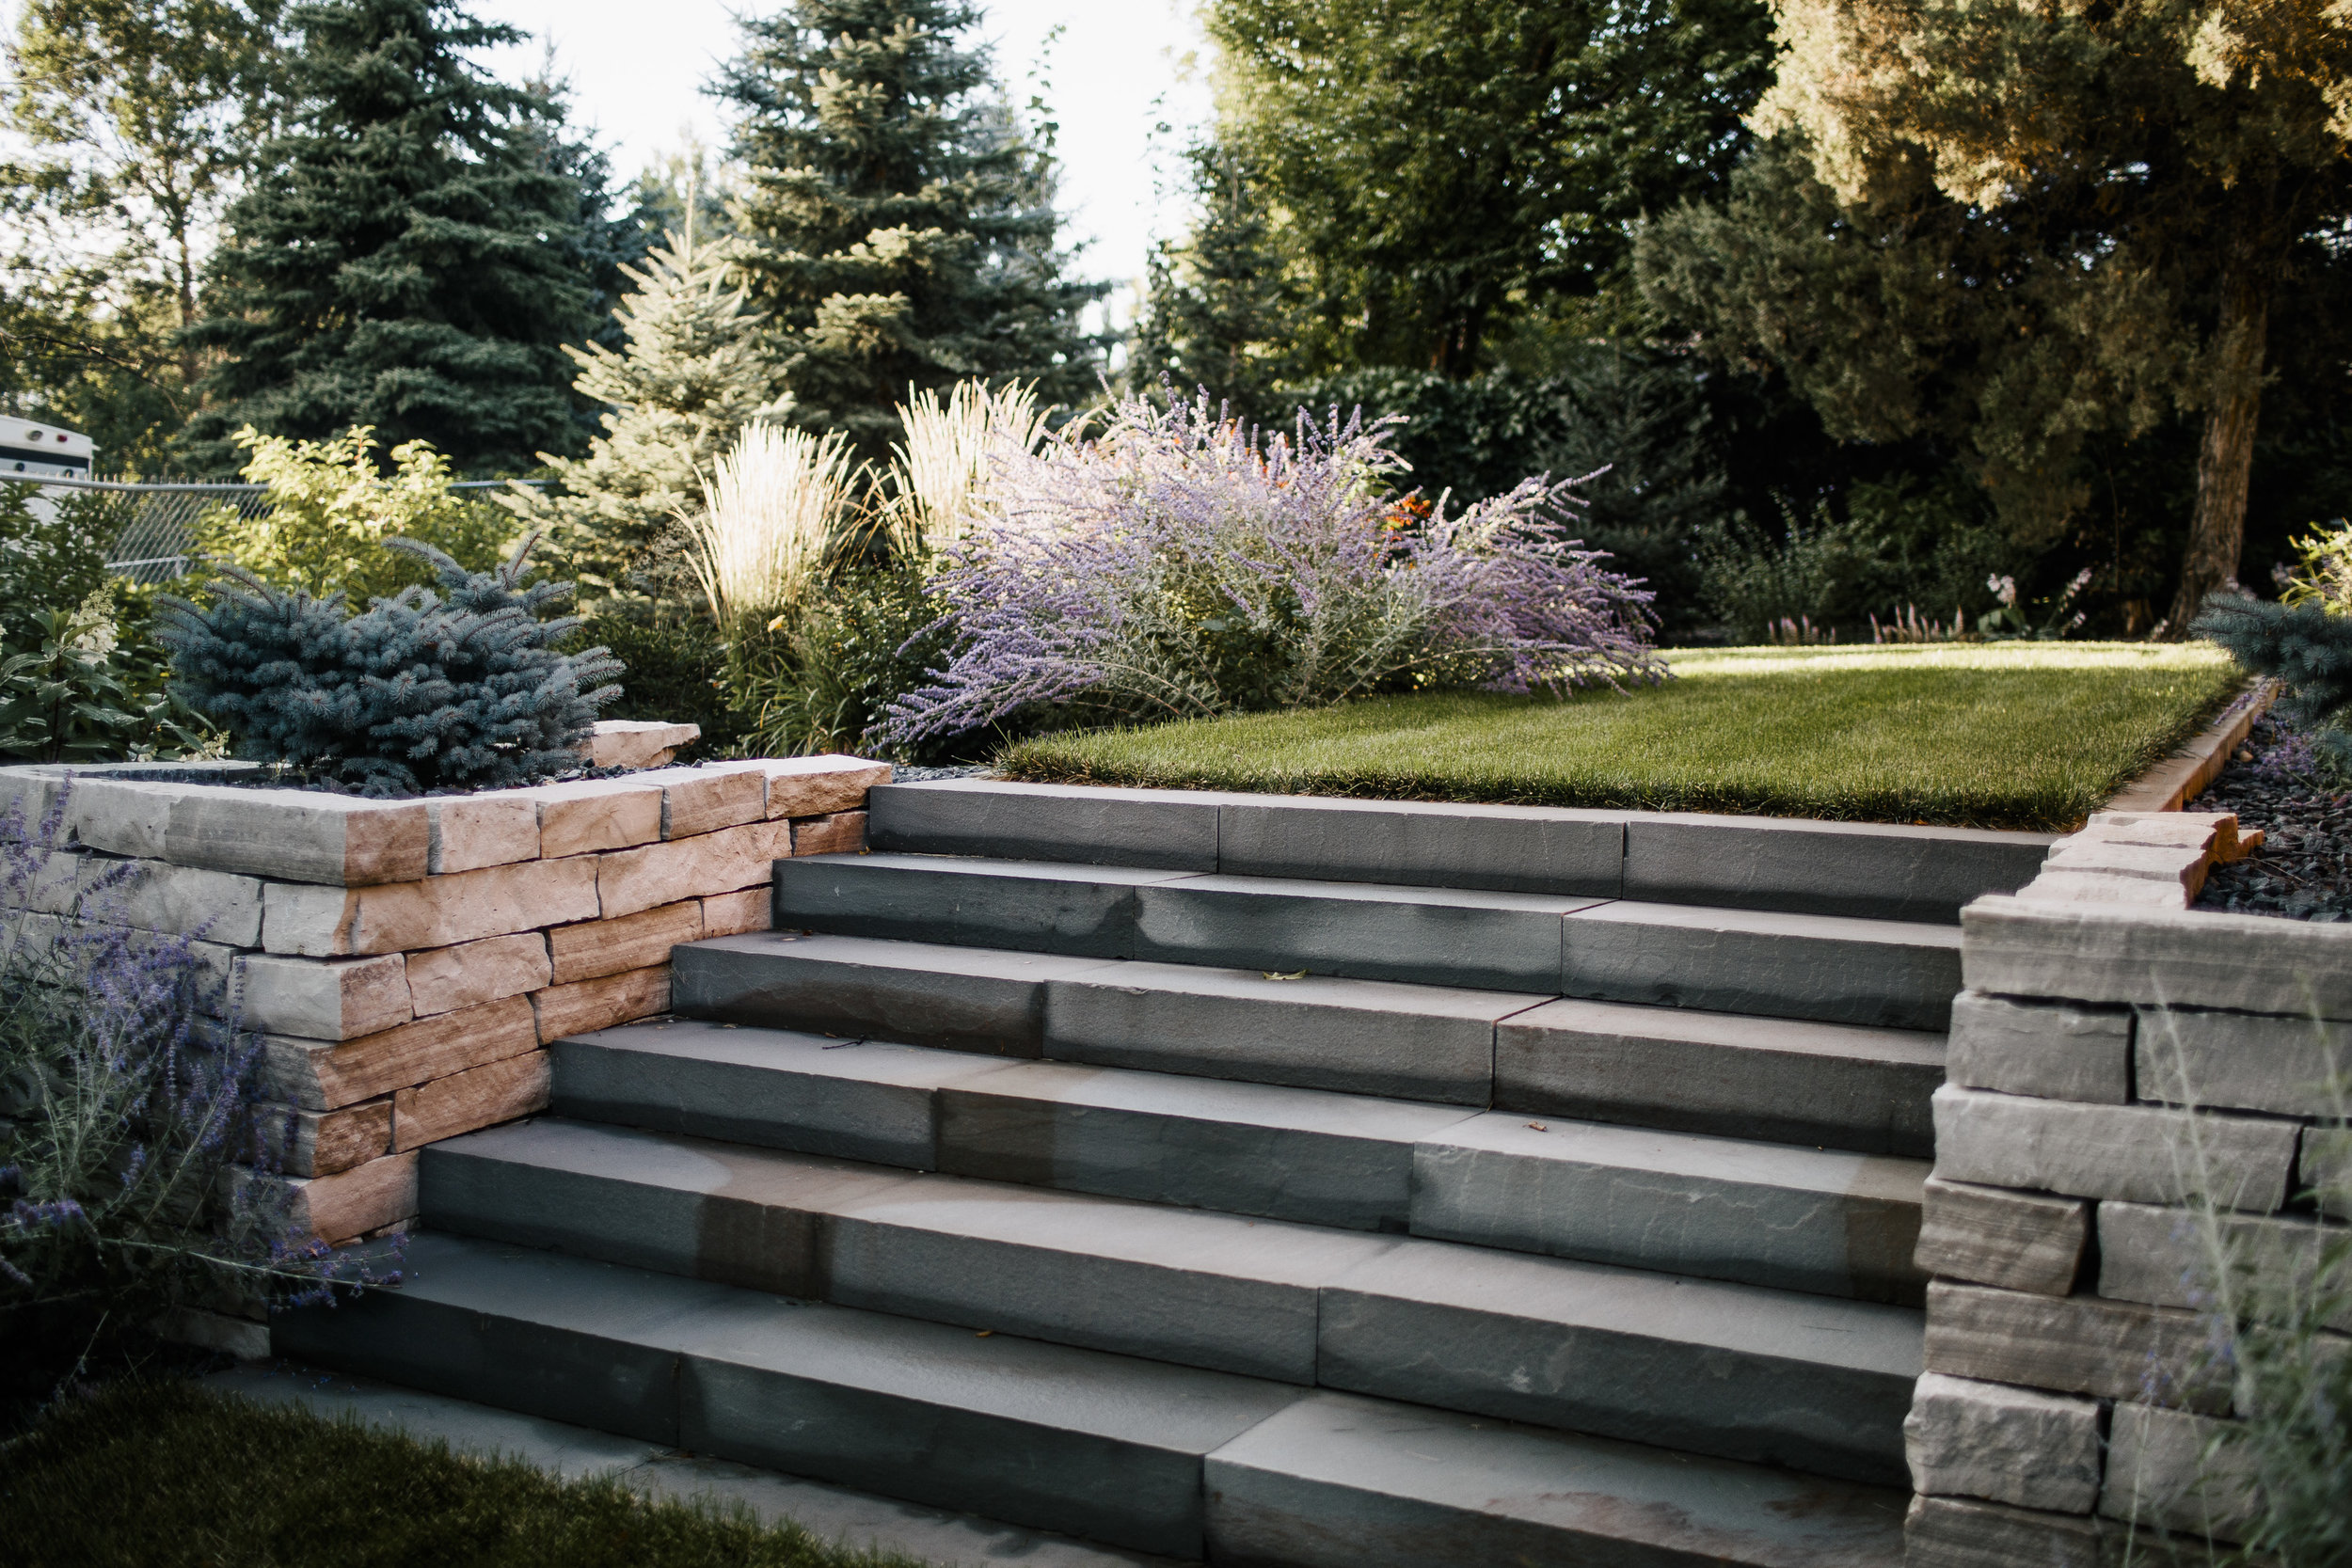 Steffes Residence Exterior Photo Shoot for Land Elements Scape Architects-19.jpg